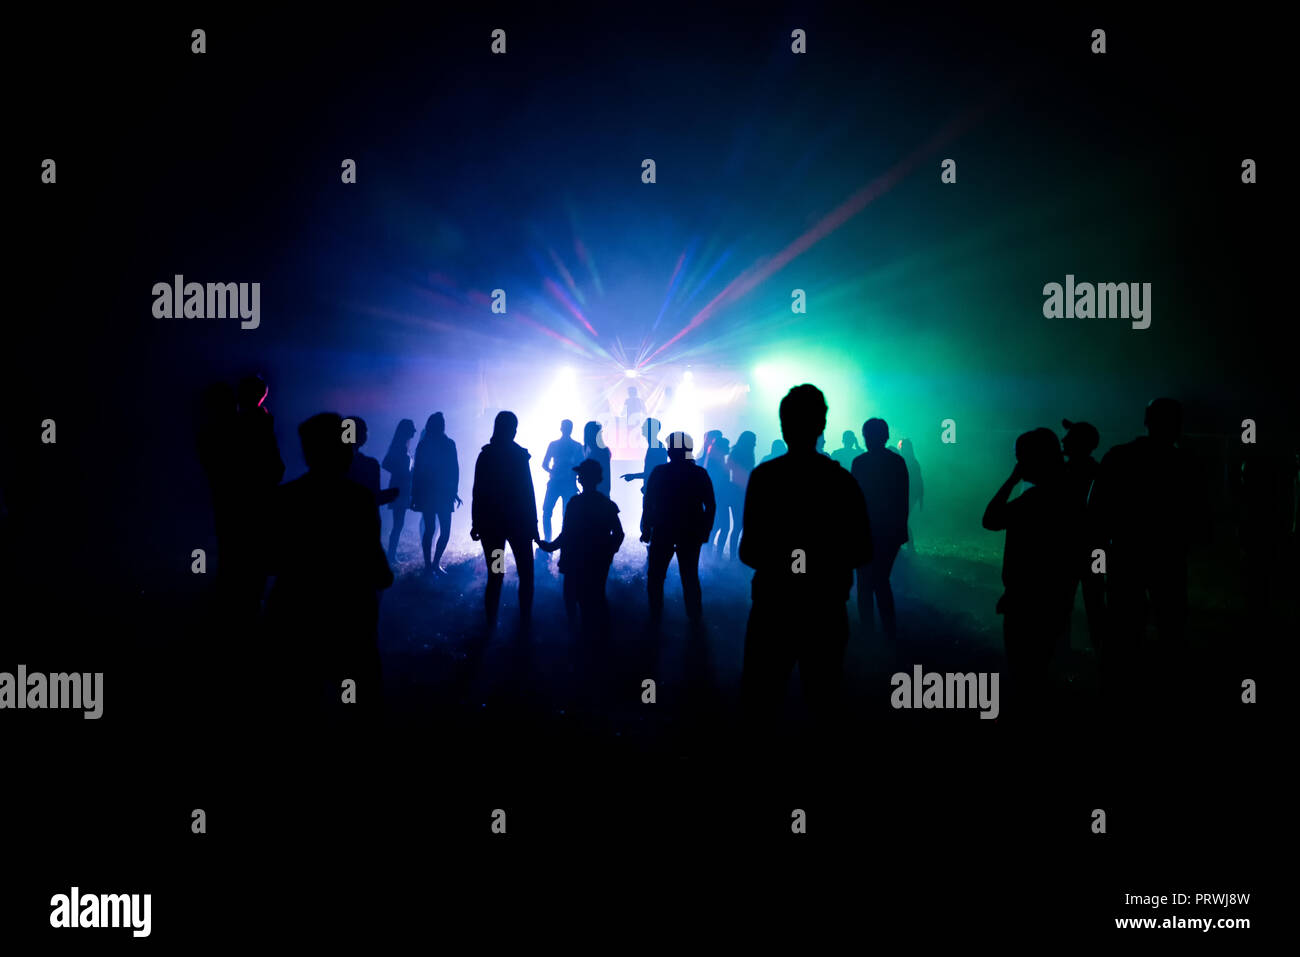 Abstract blurry background, silhouettes of people at open air party Stock Photo